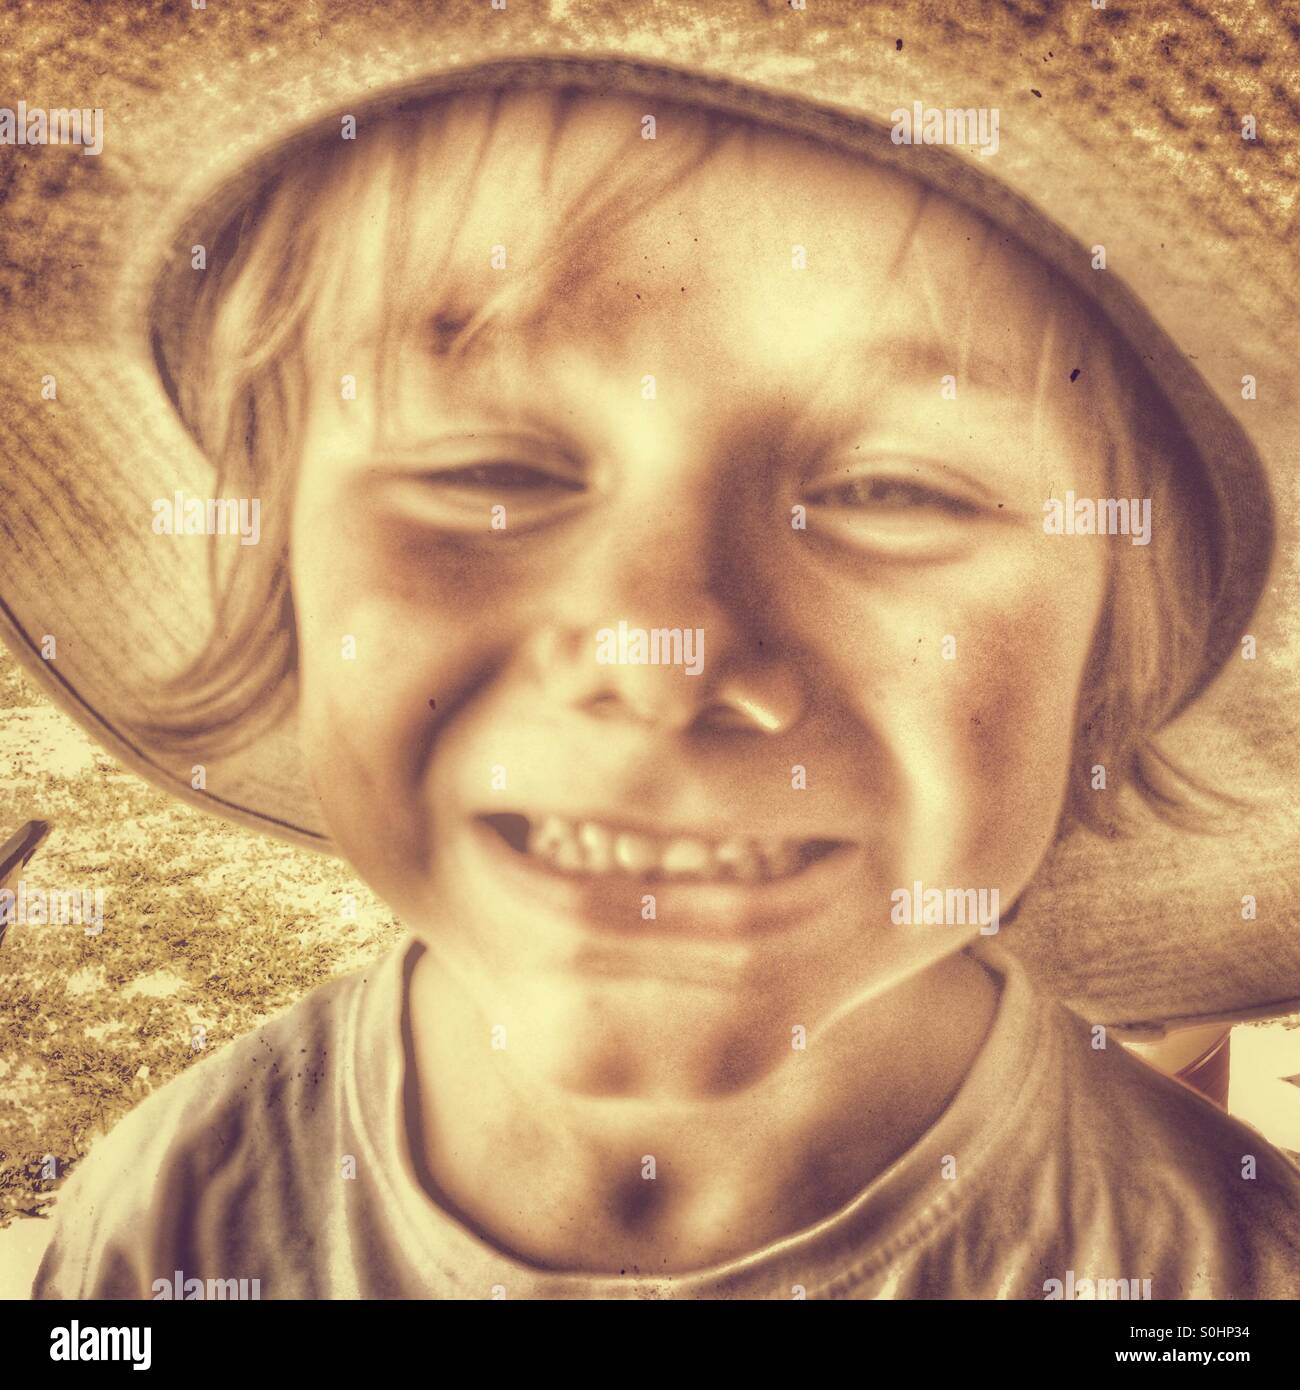 Boy five years old smiling - Stock Image